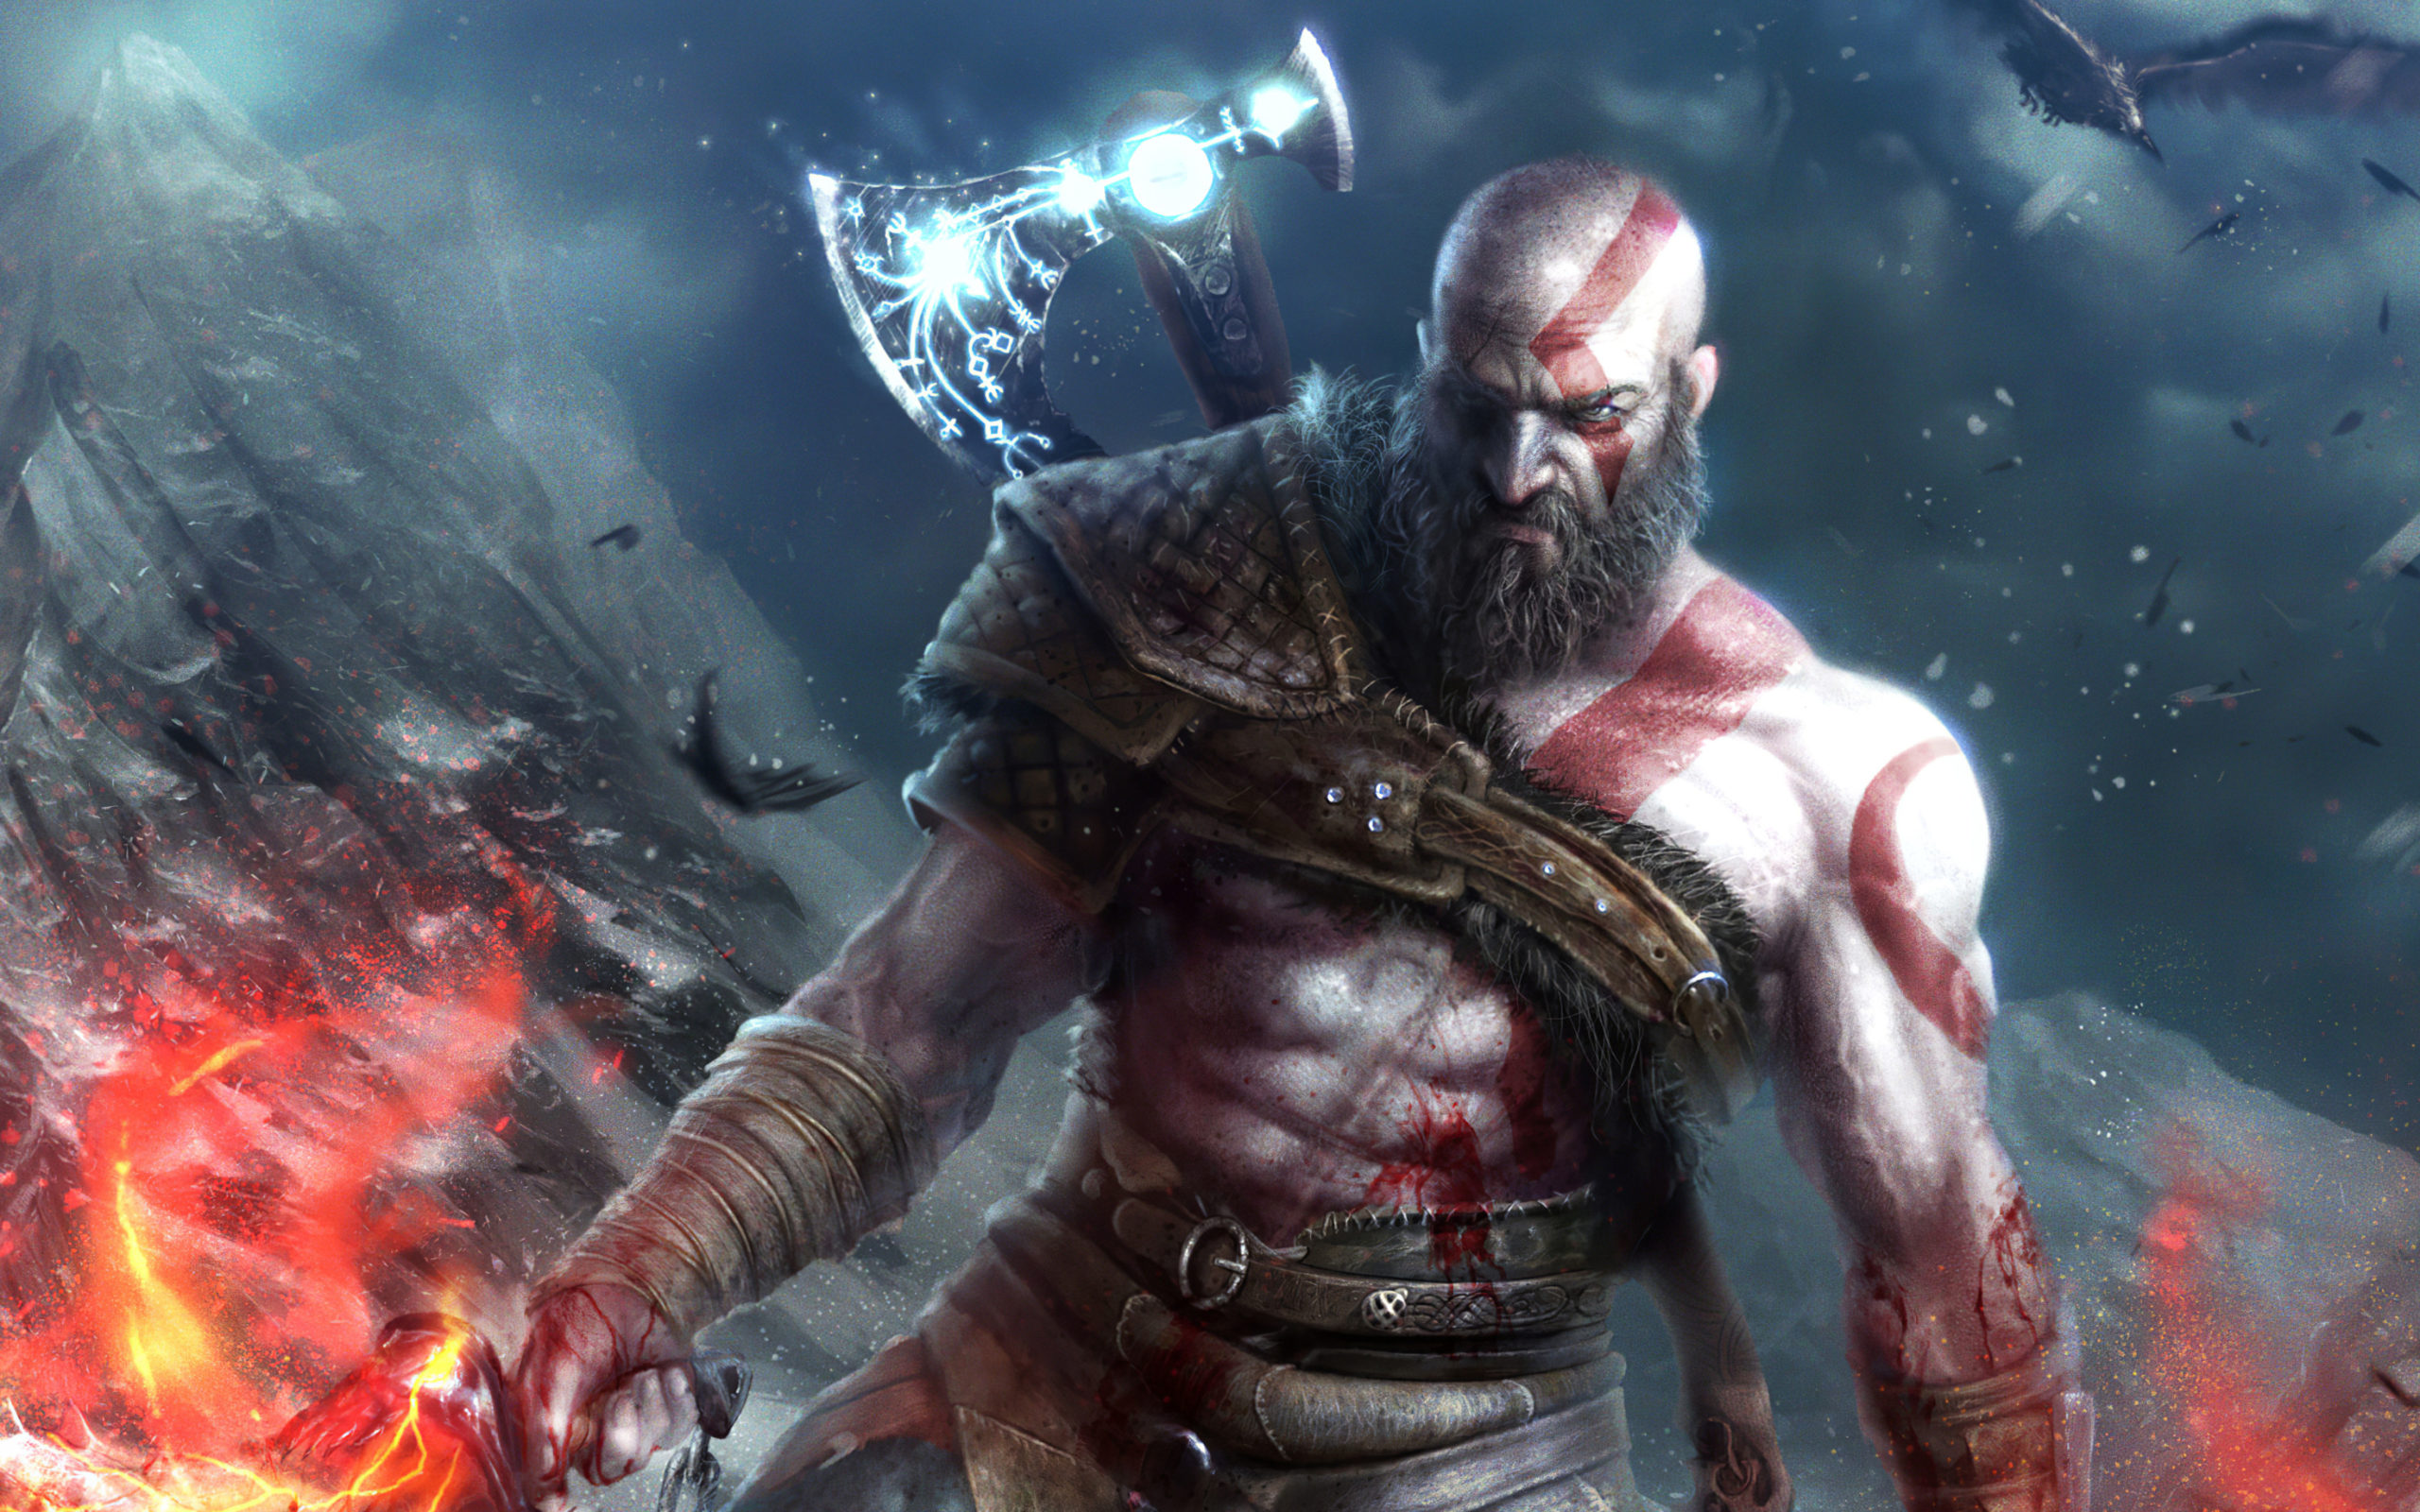 God Of War Pc Wallpaper Top Pc Wallpaper